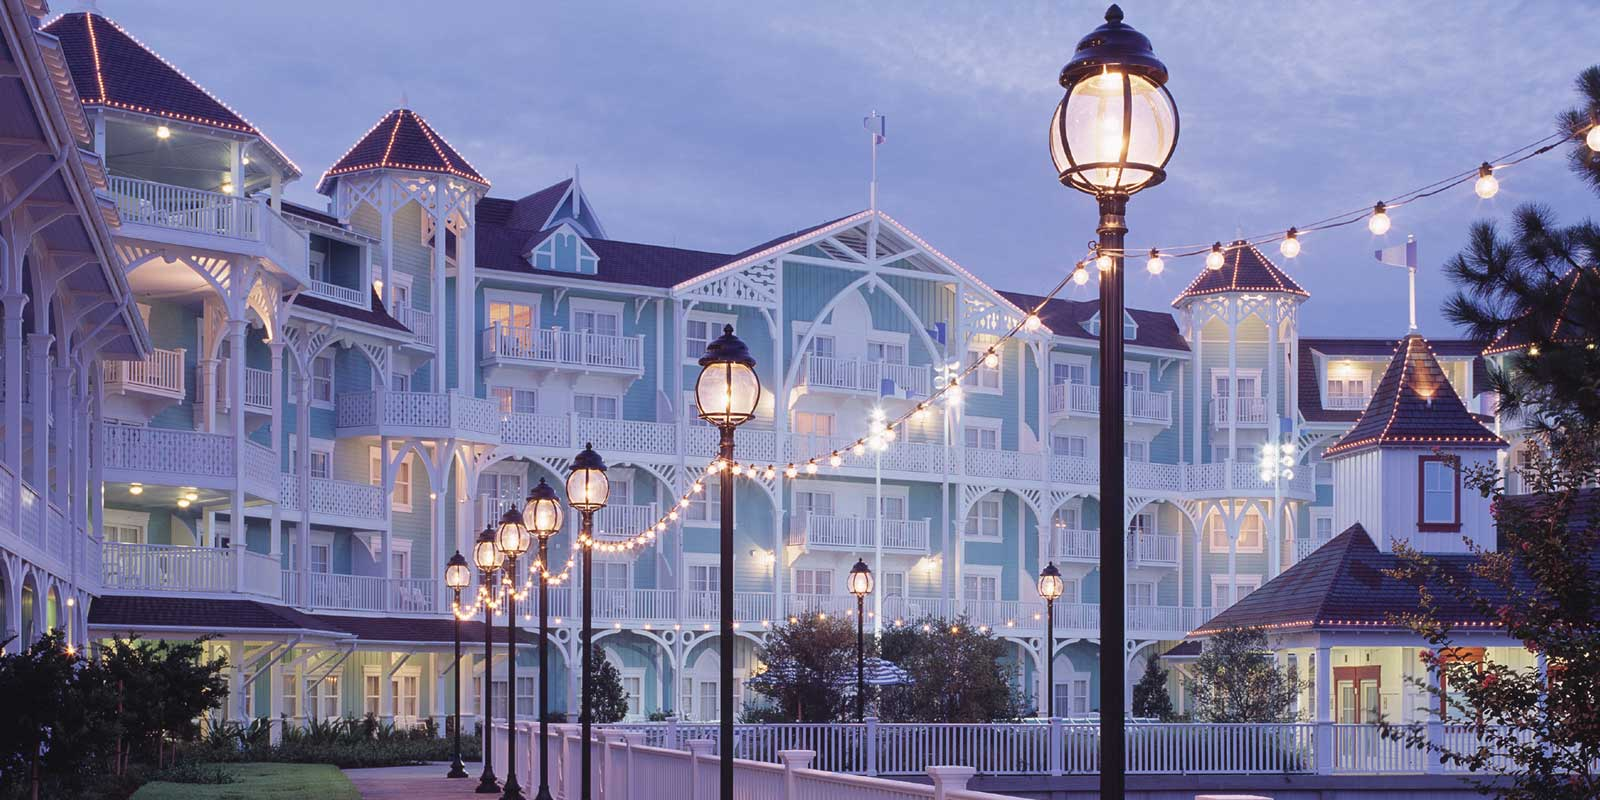 Landscape photo of the Disney Beach Club Villas at Disney World in the early evening.